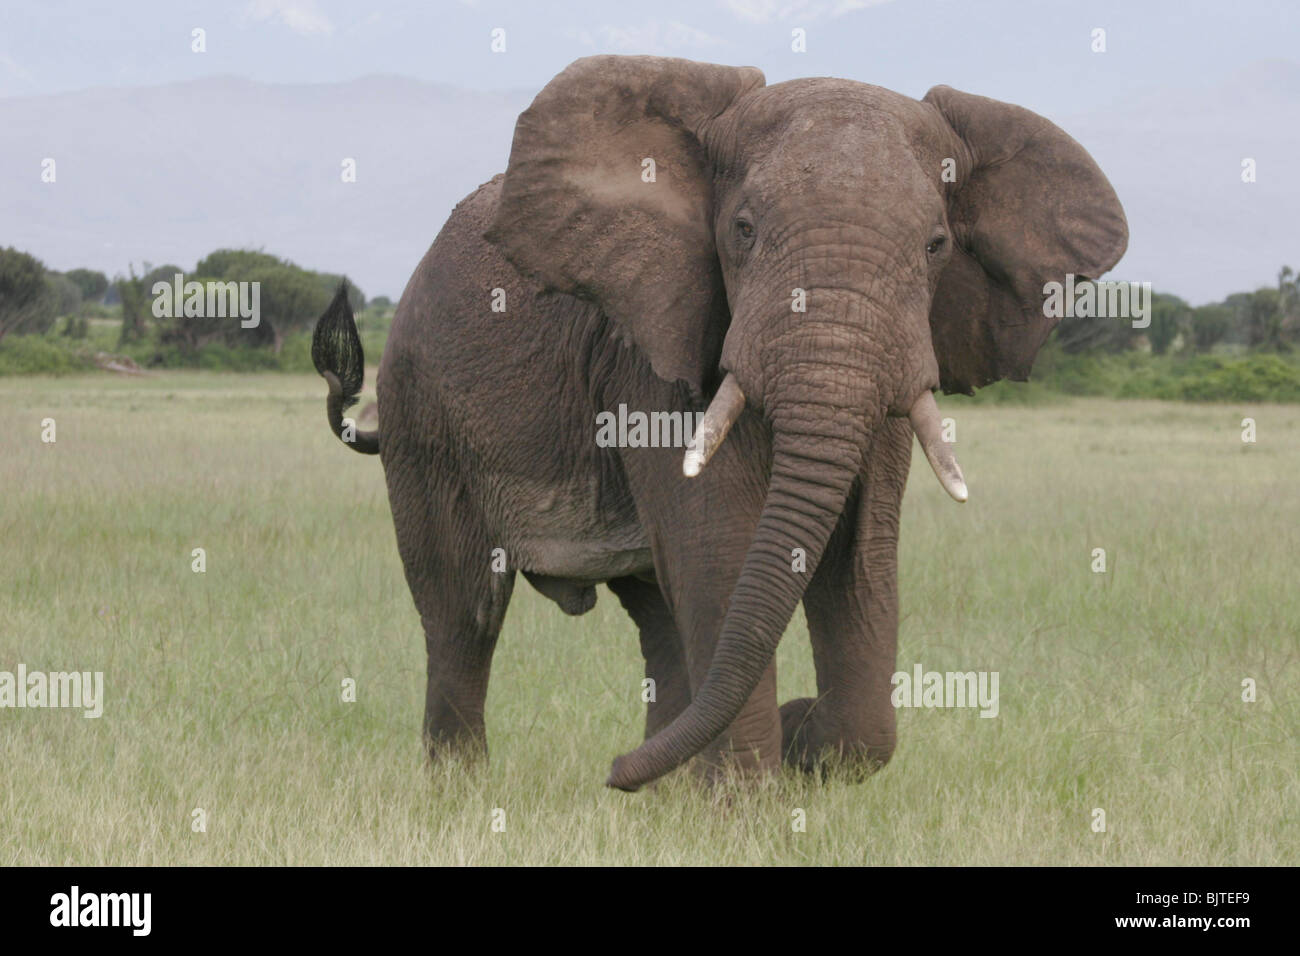 Elephant with the Rwenzori mountains in the background. Queen Elizabeth National Park. Uganda. Africa. - Stock Image